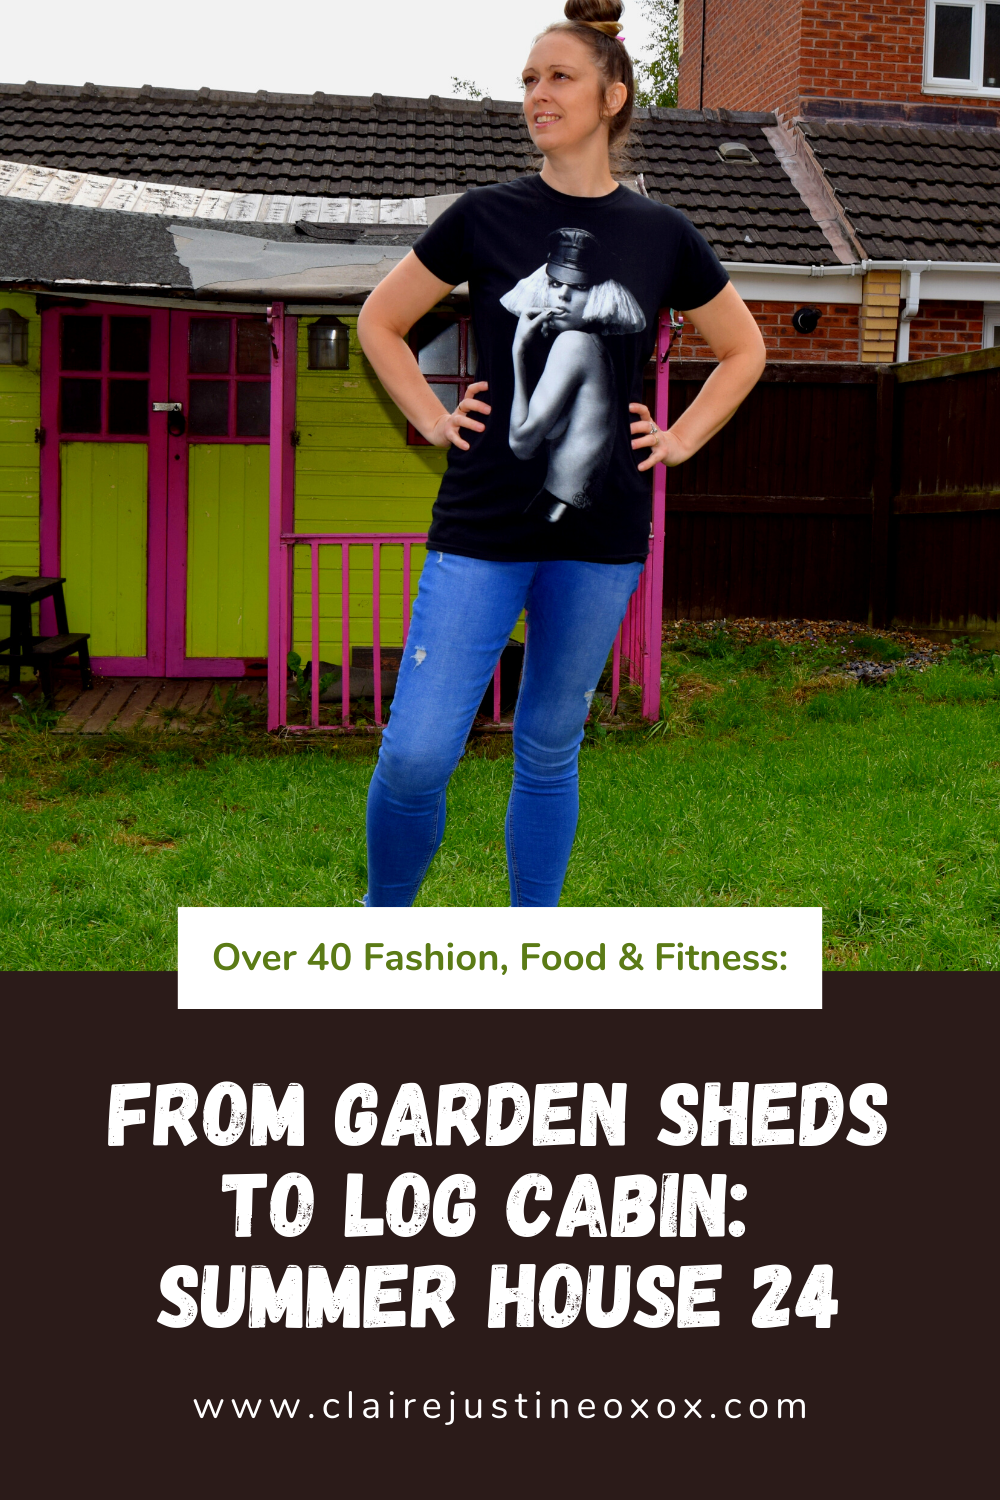 From Garden Sheds To Log Cabin: Summer House 24